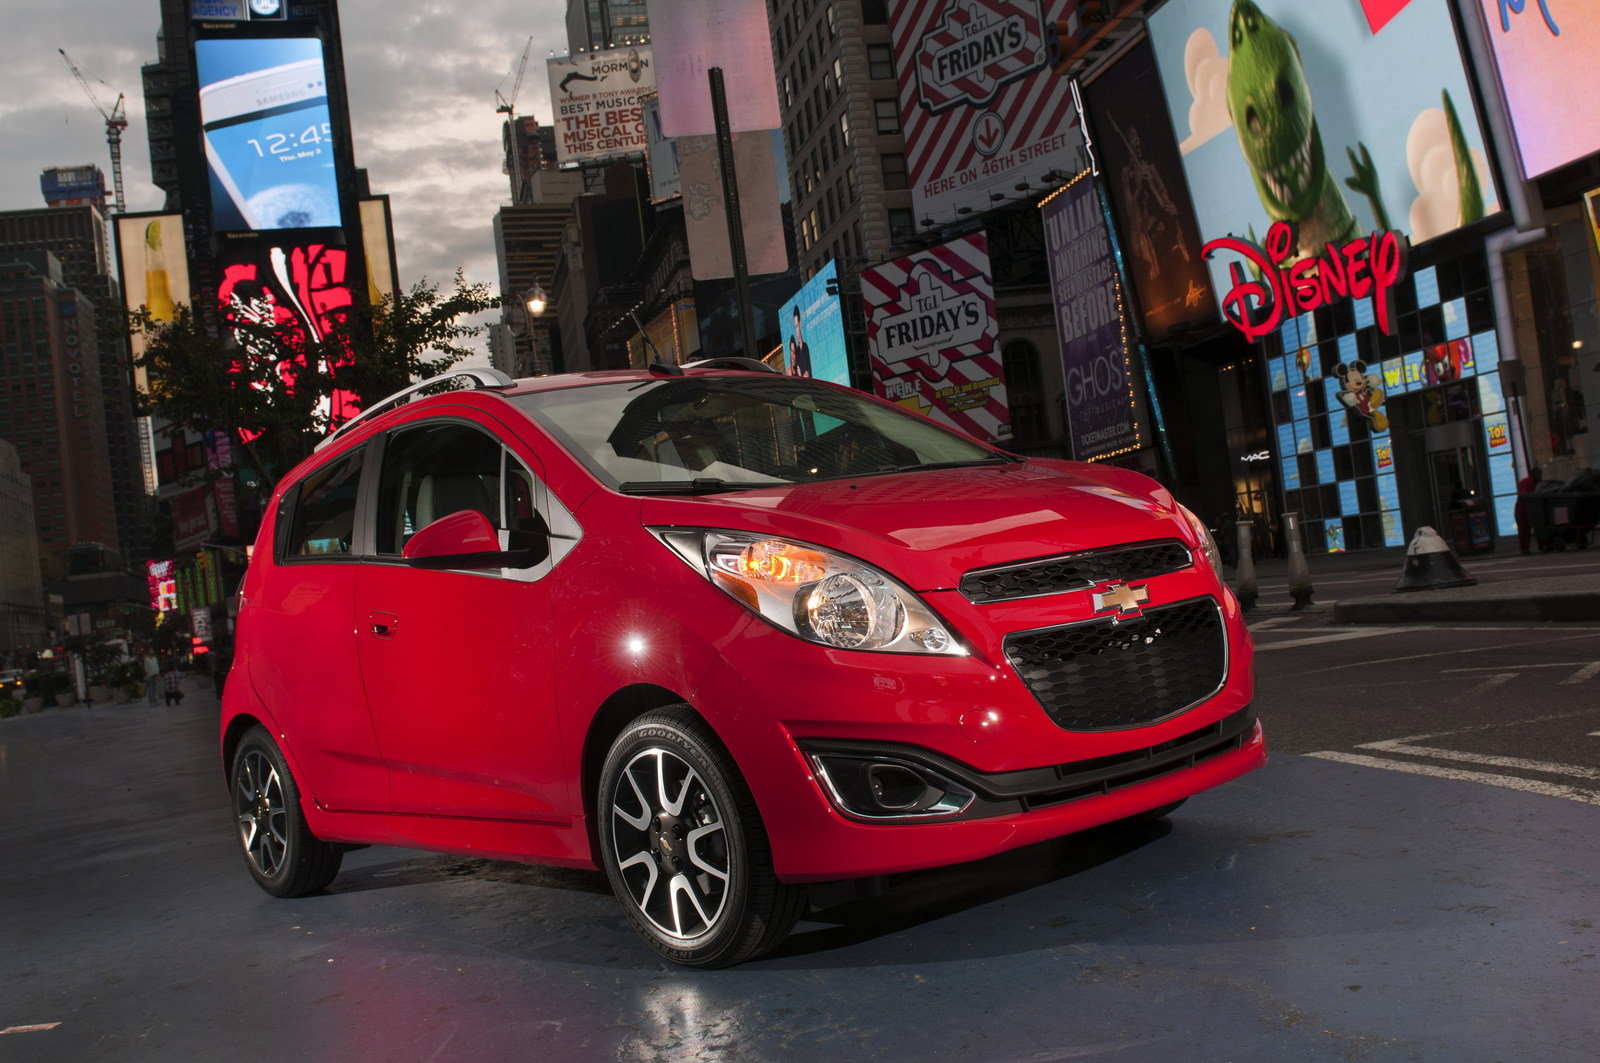 All Chevy 2015 chevy spark review : 2014 Chevrolet Spark Review - Top Speed